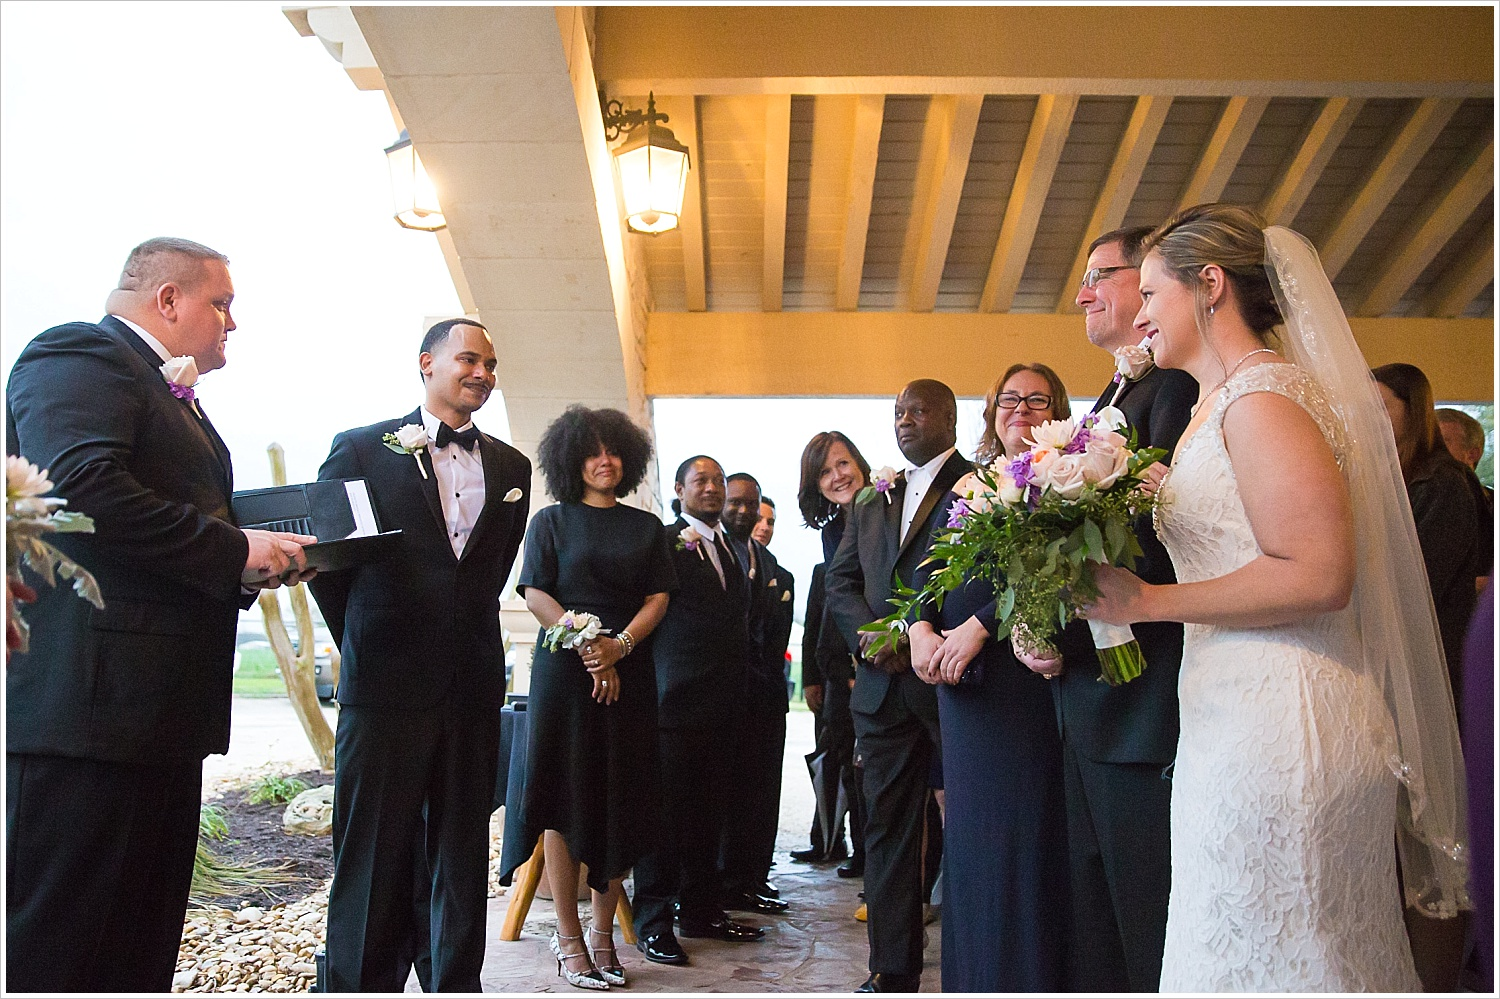 Groom's side smiles at bride coming down the aisle with her father